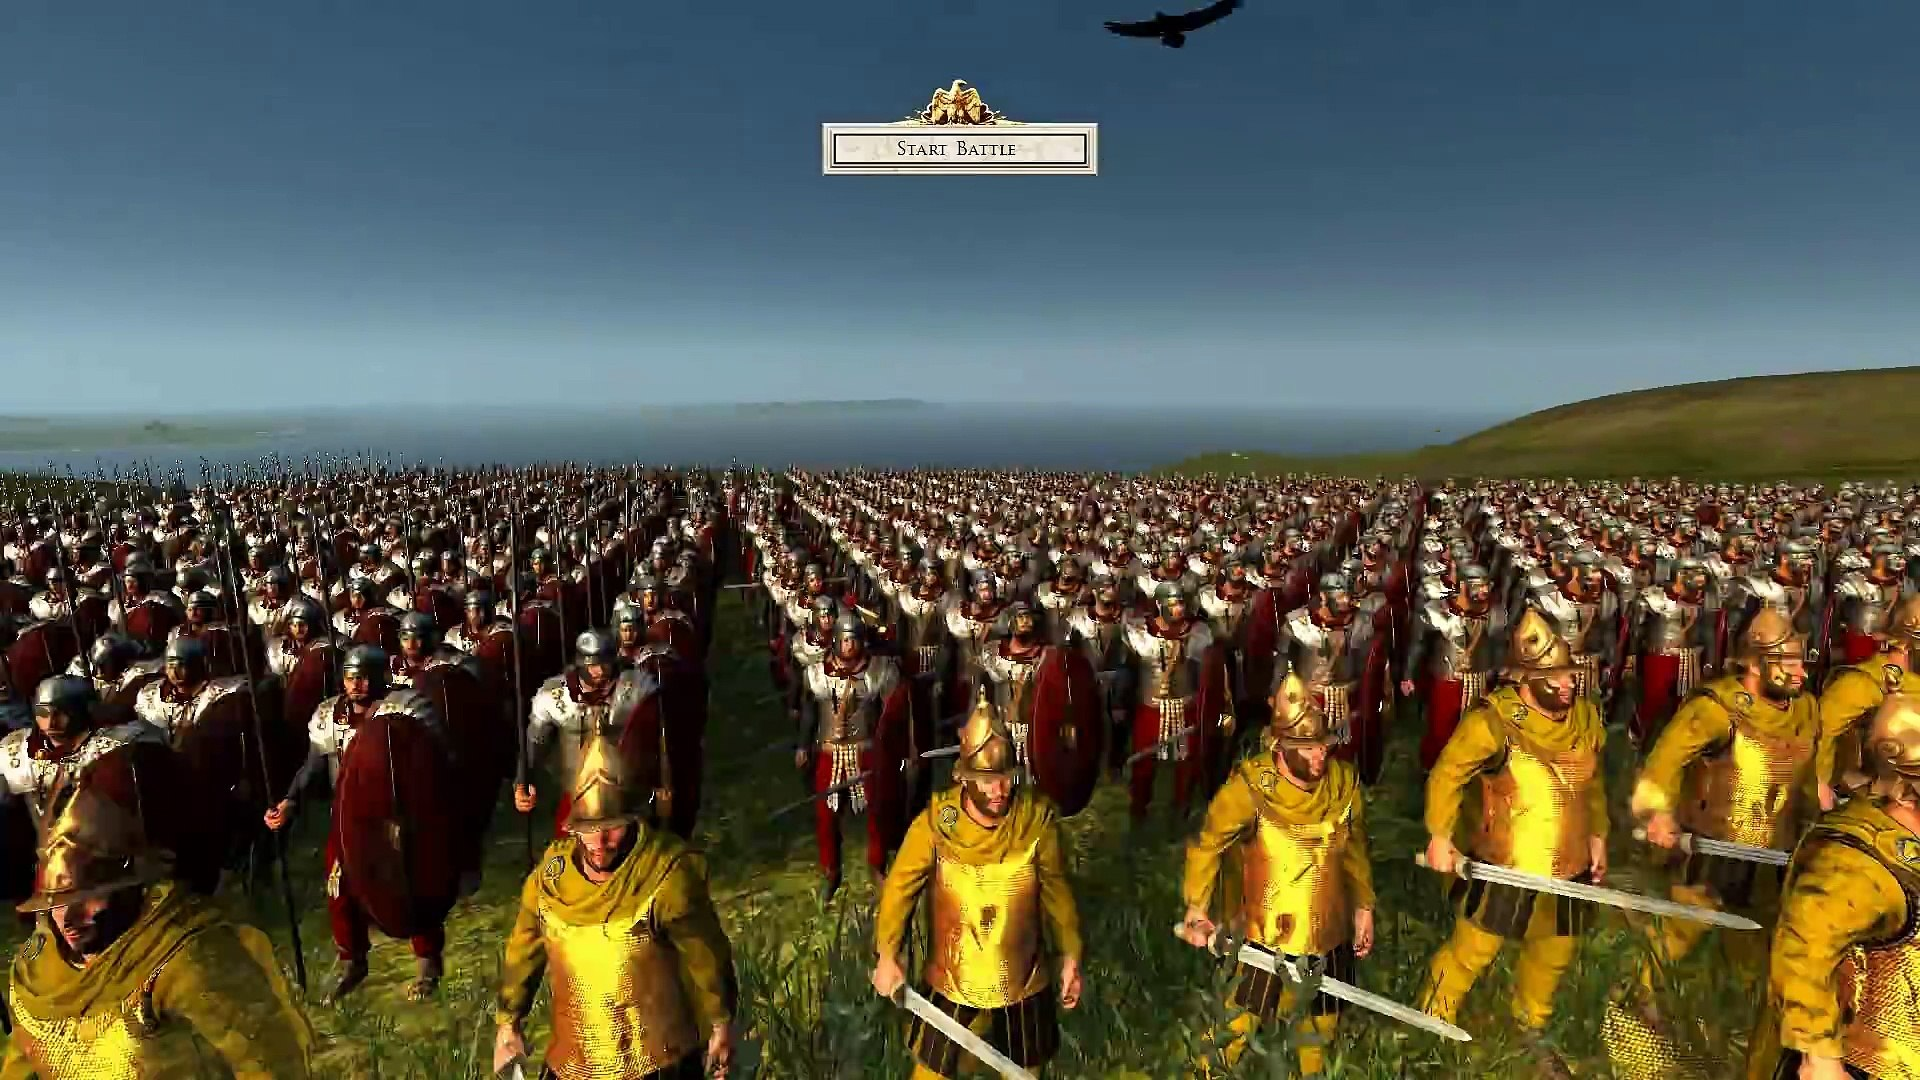 Game of thrones total war rome 2 cannon fodder 2 pc game